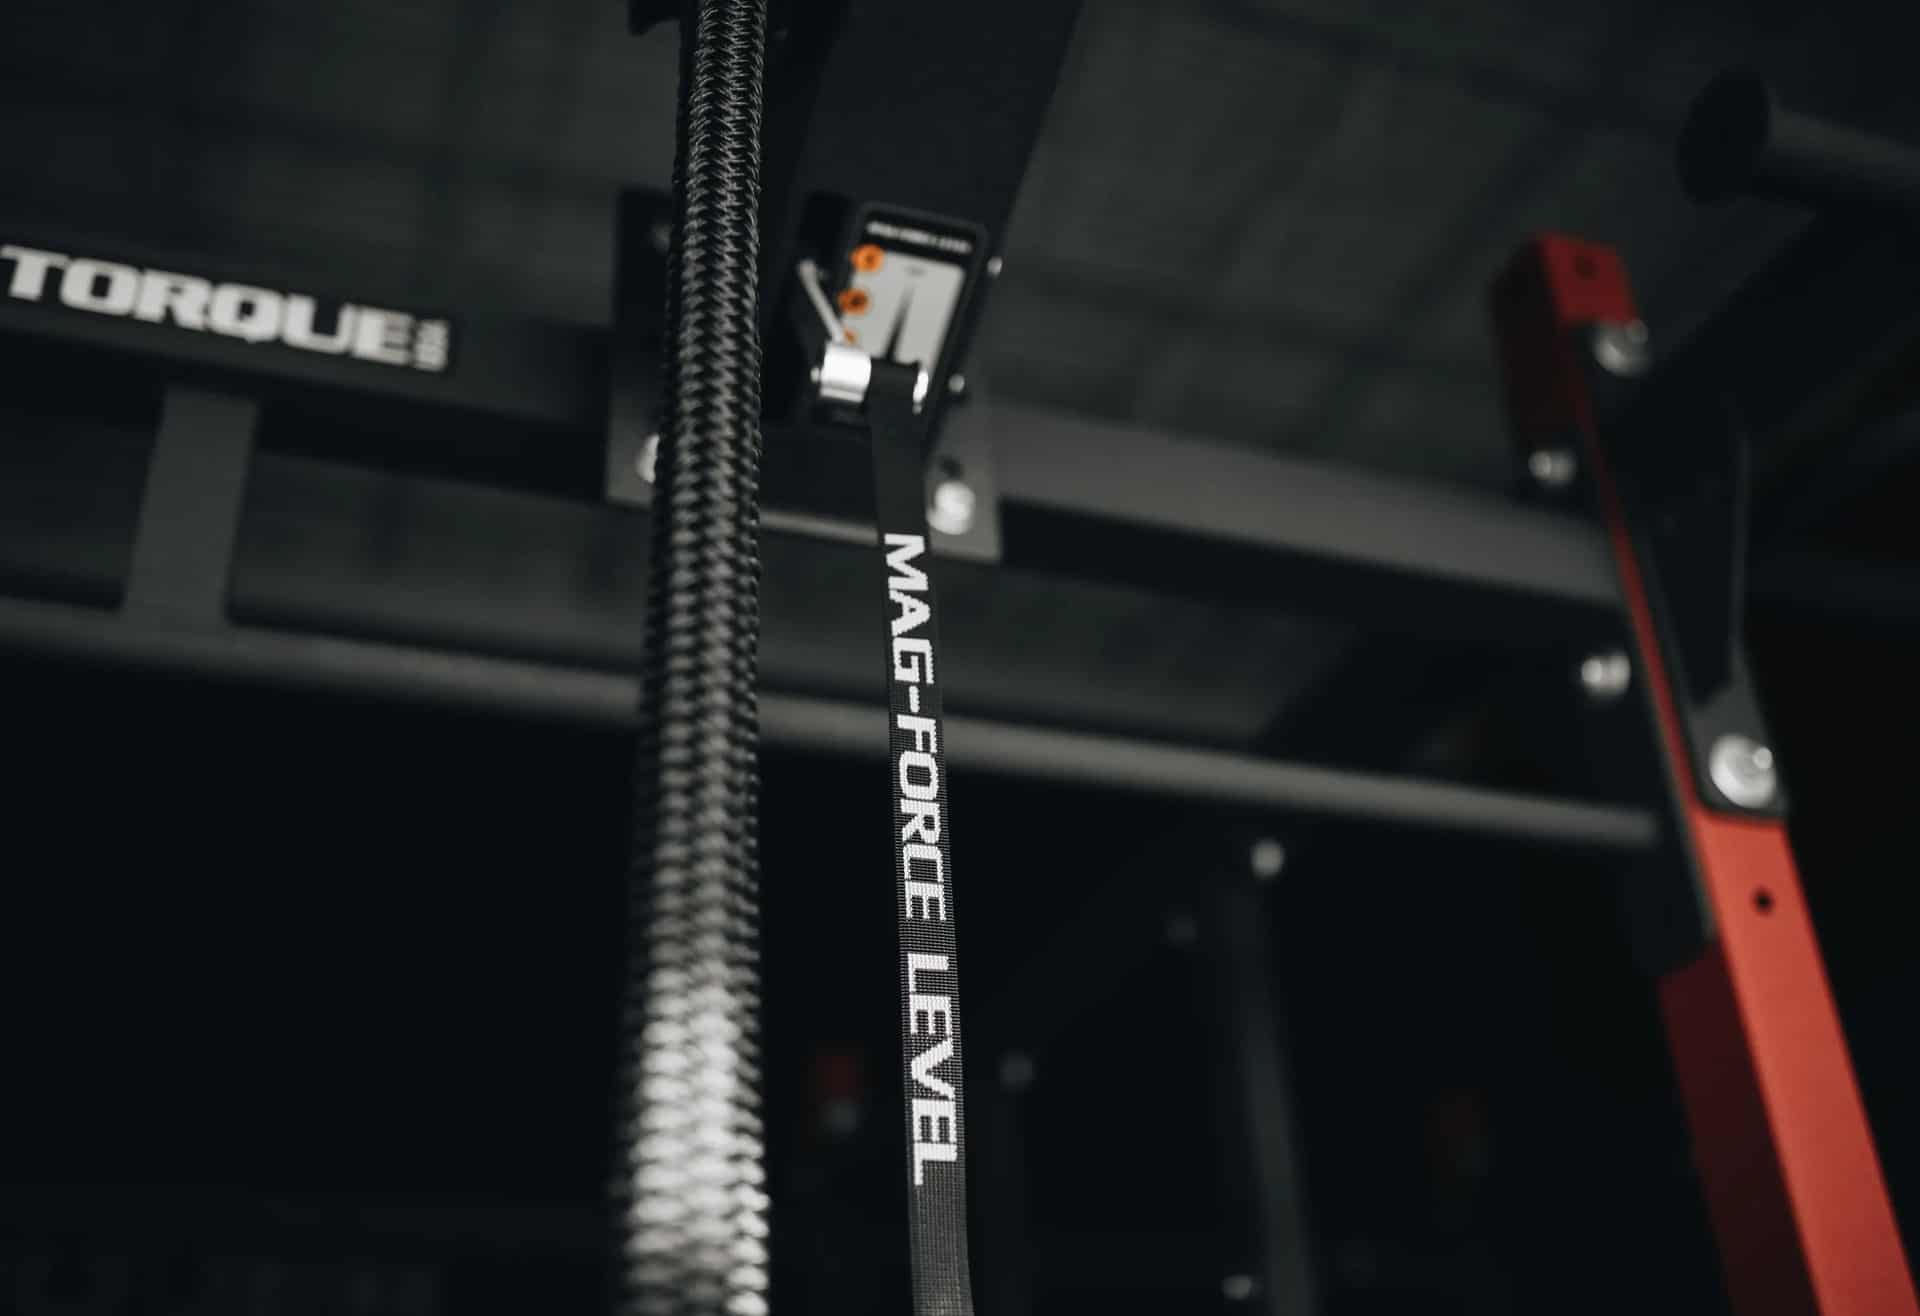 Torque Fitness Endless Rope Trainer lighter